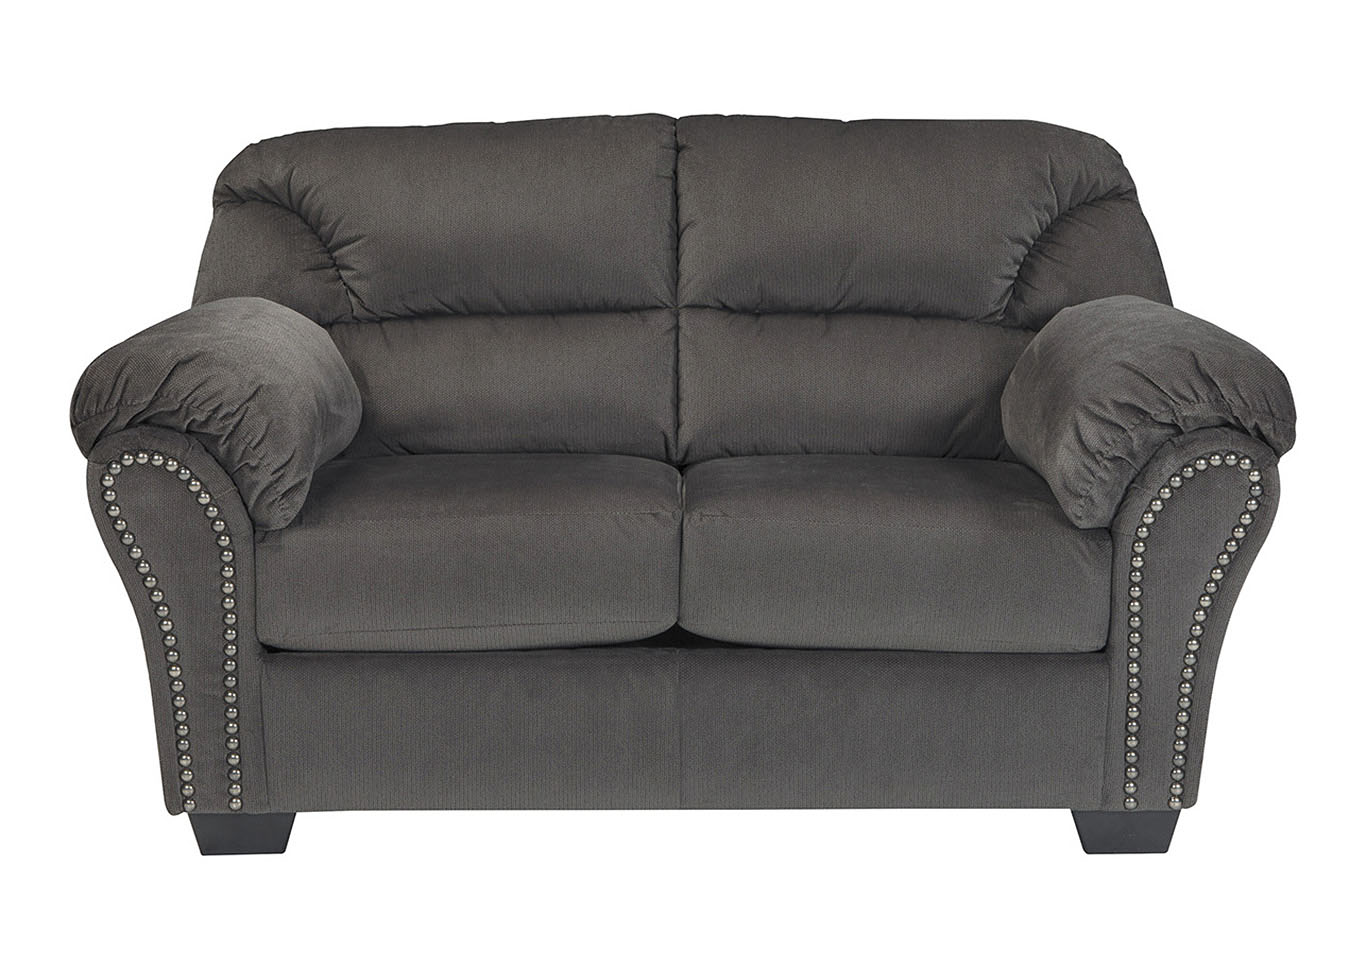 Roses Flooring And Furniture Kinlock Charcoal Loveseat